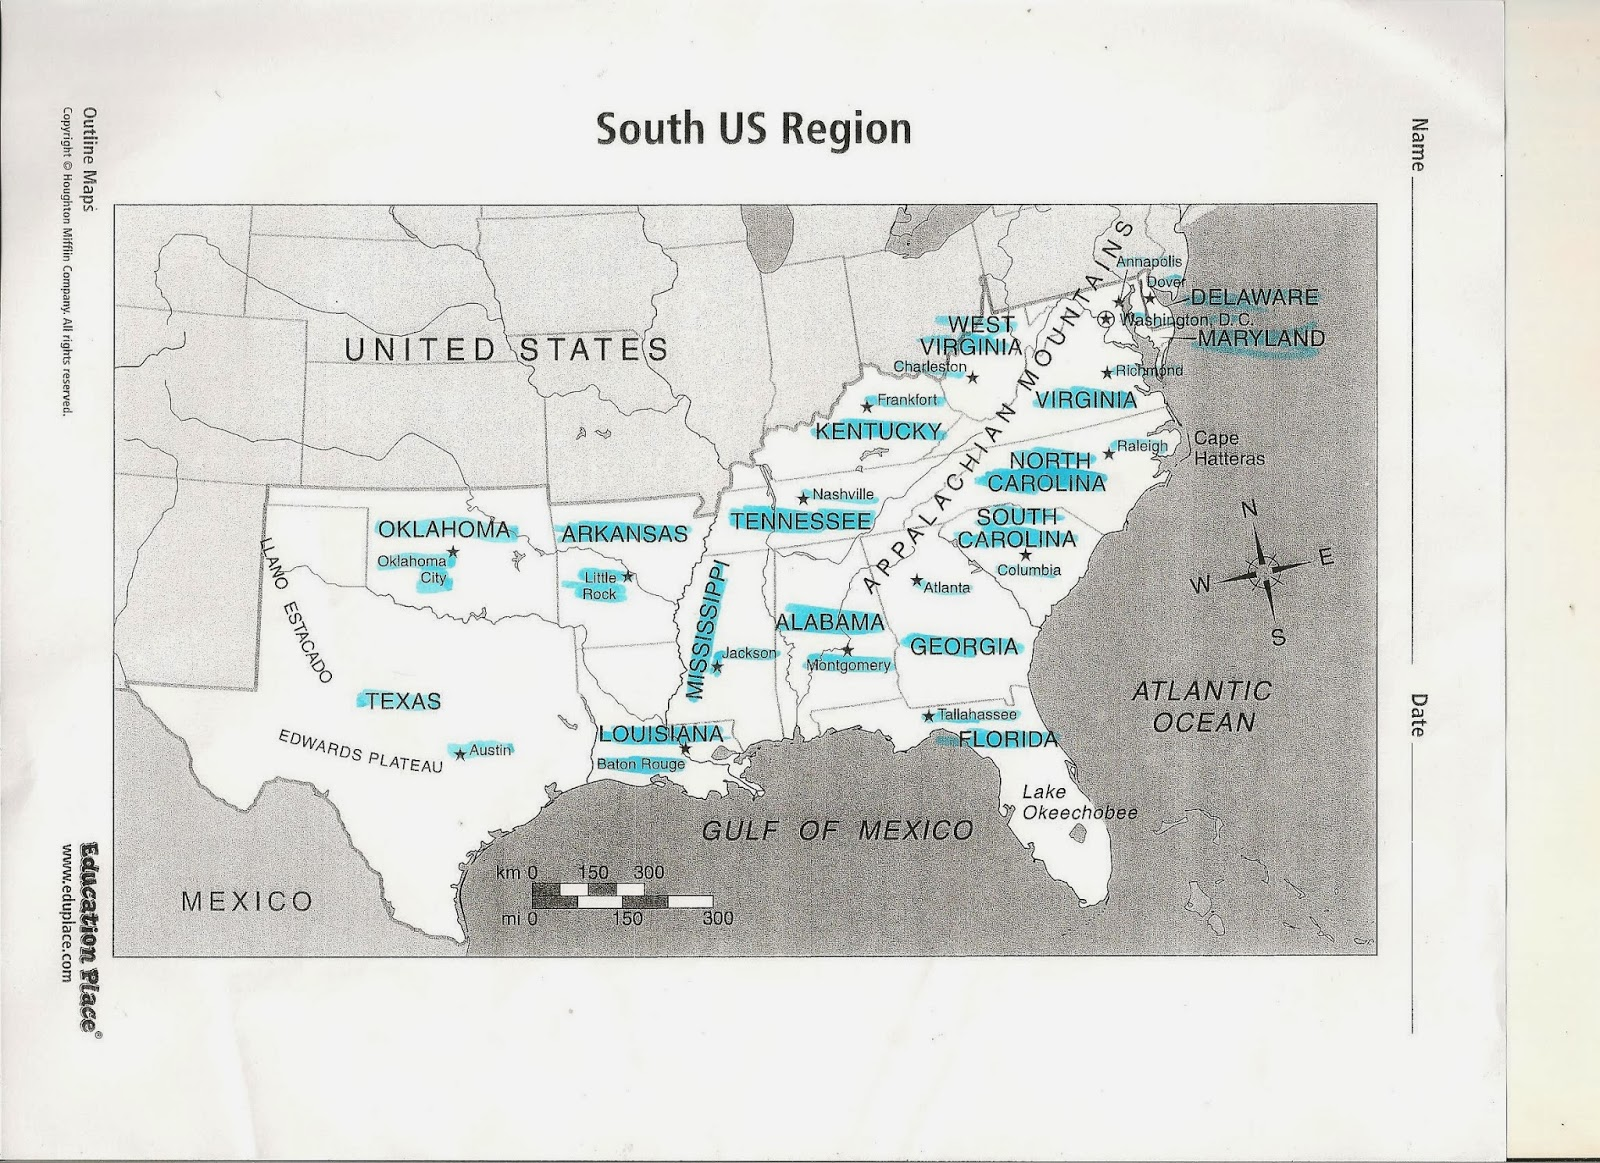 Map Of The South Us Region - South us region map